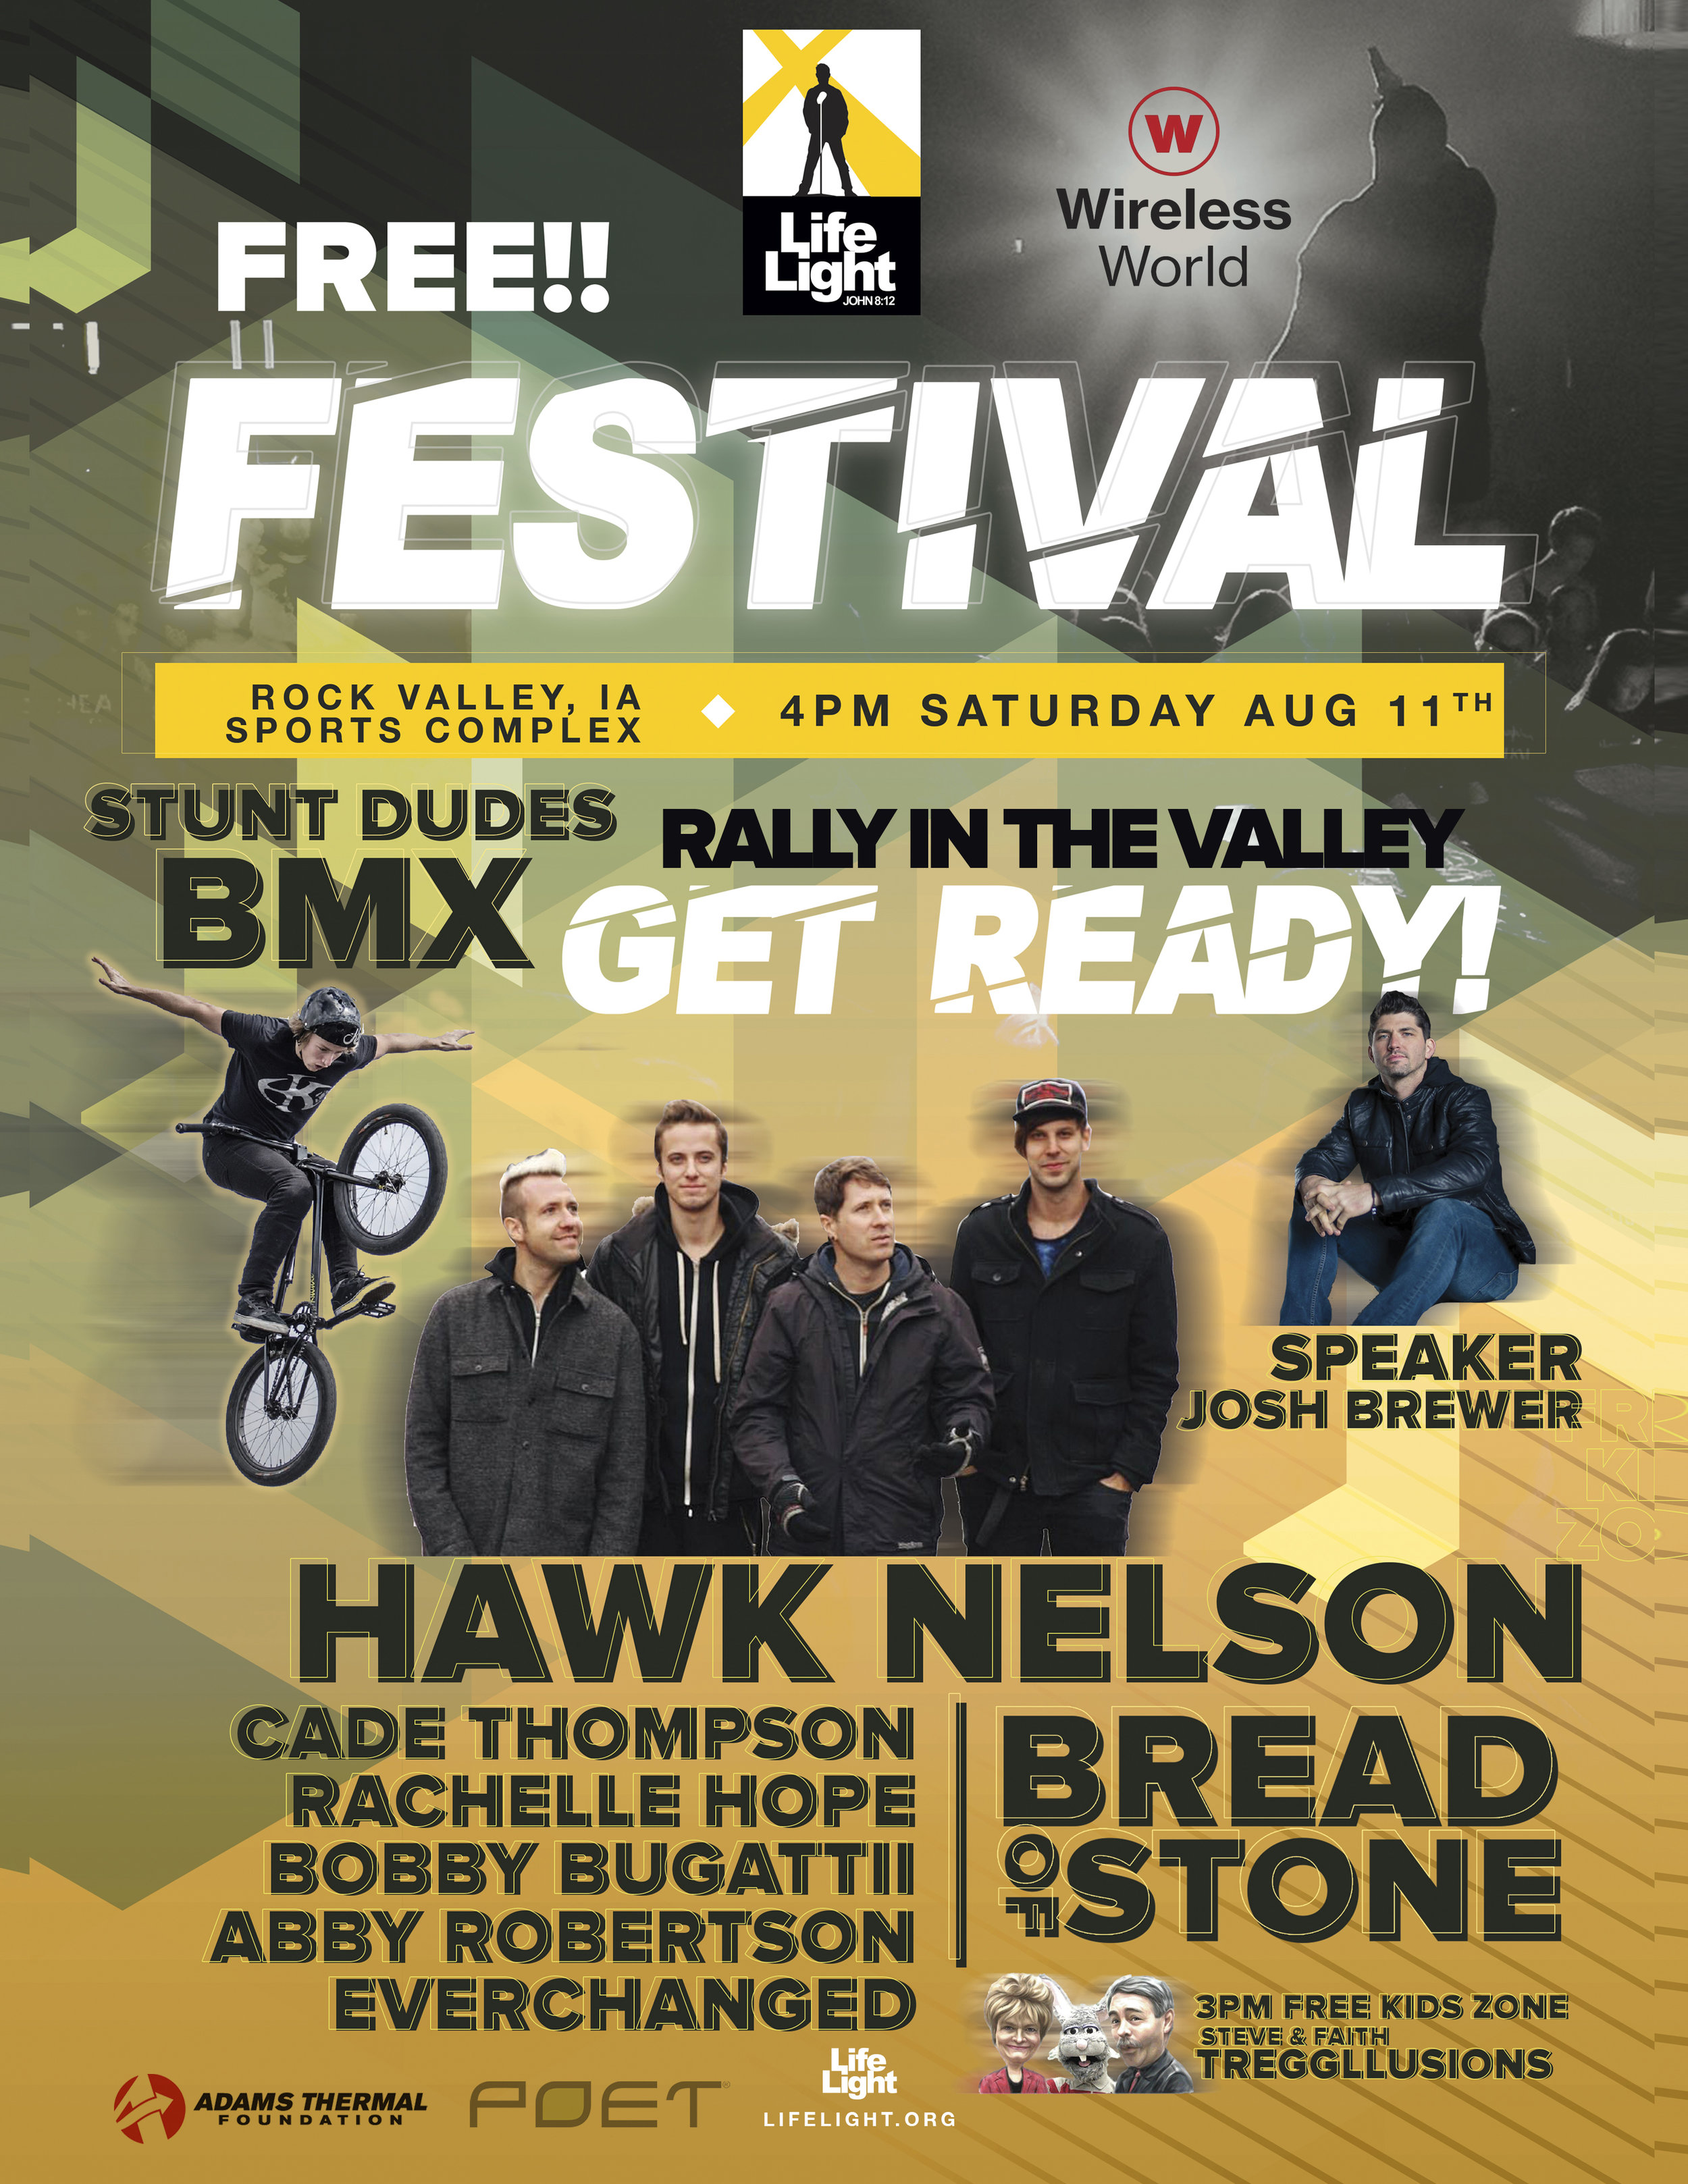 Rock Valley, IA August 11th -